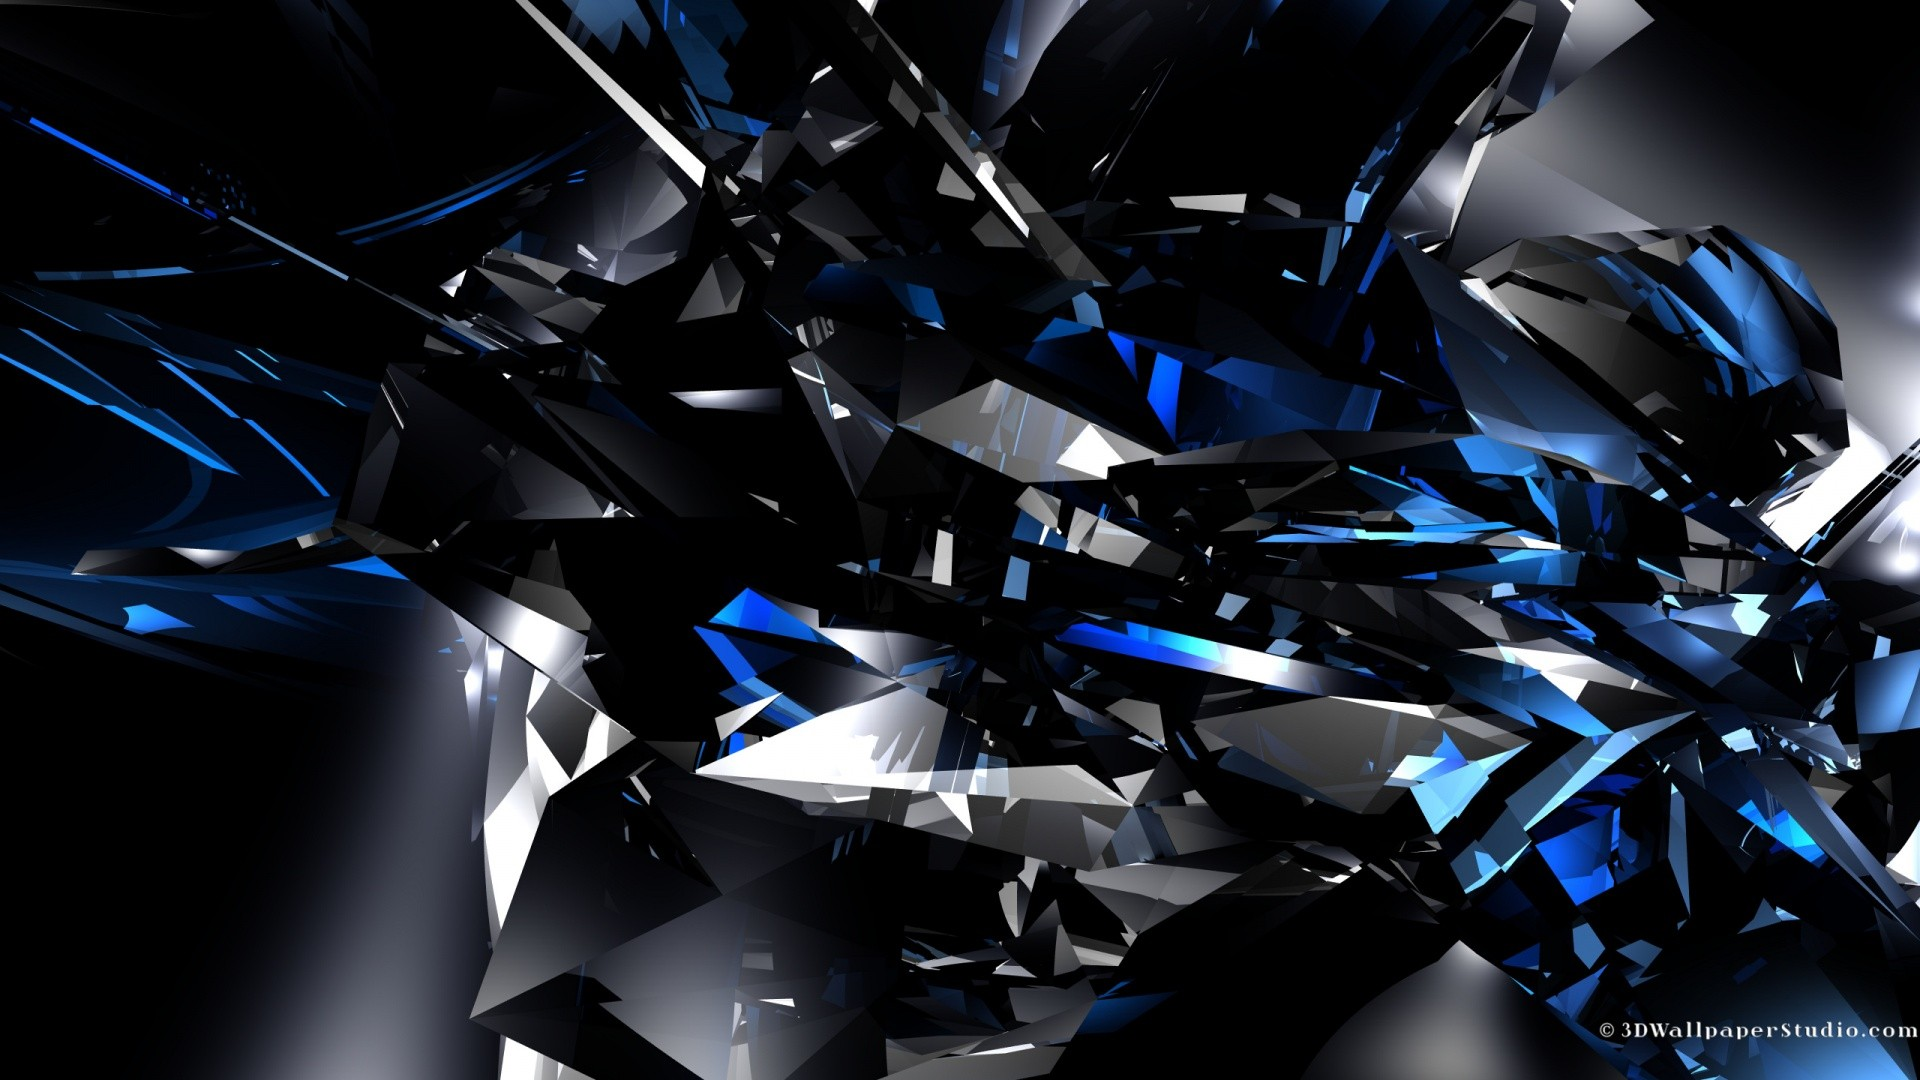 Abstract Blue Wallpaper 1920x1080 Abstract Blue Crystals Digital 1920x1080